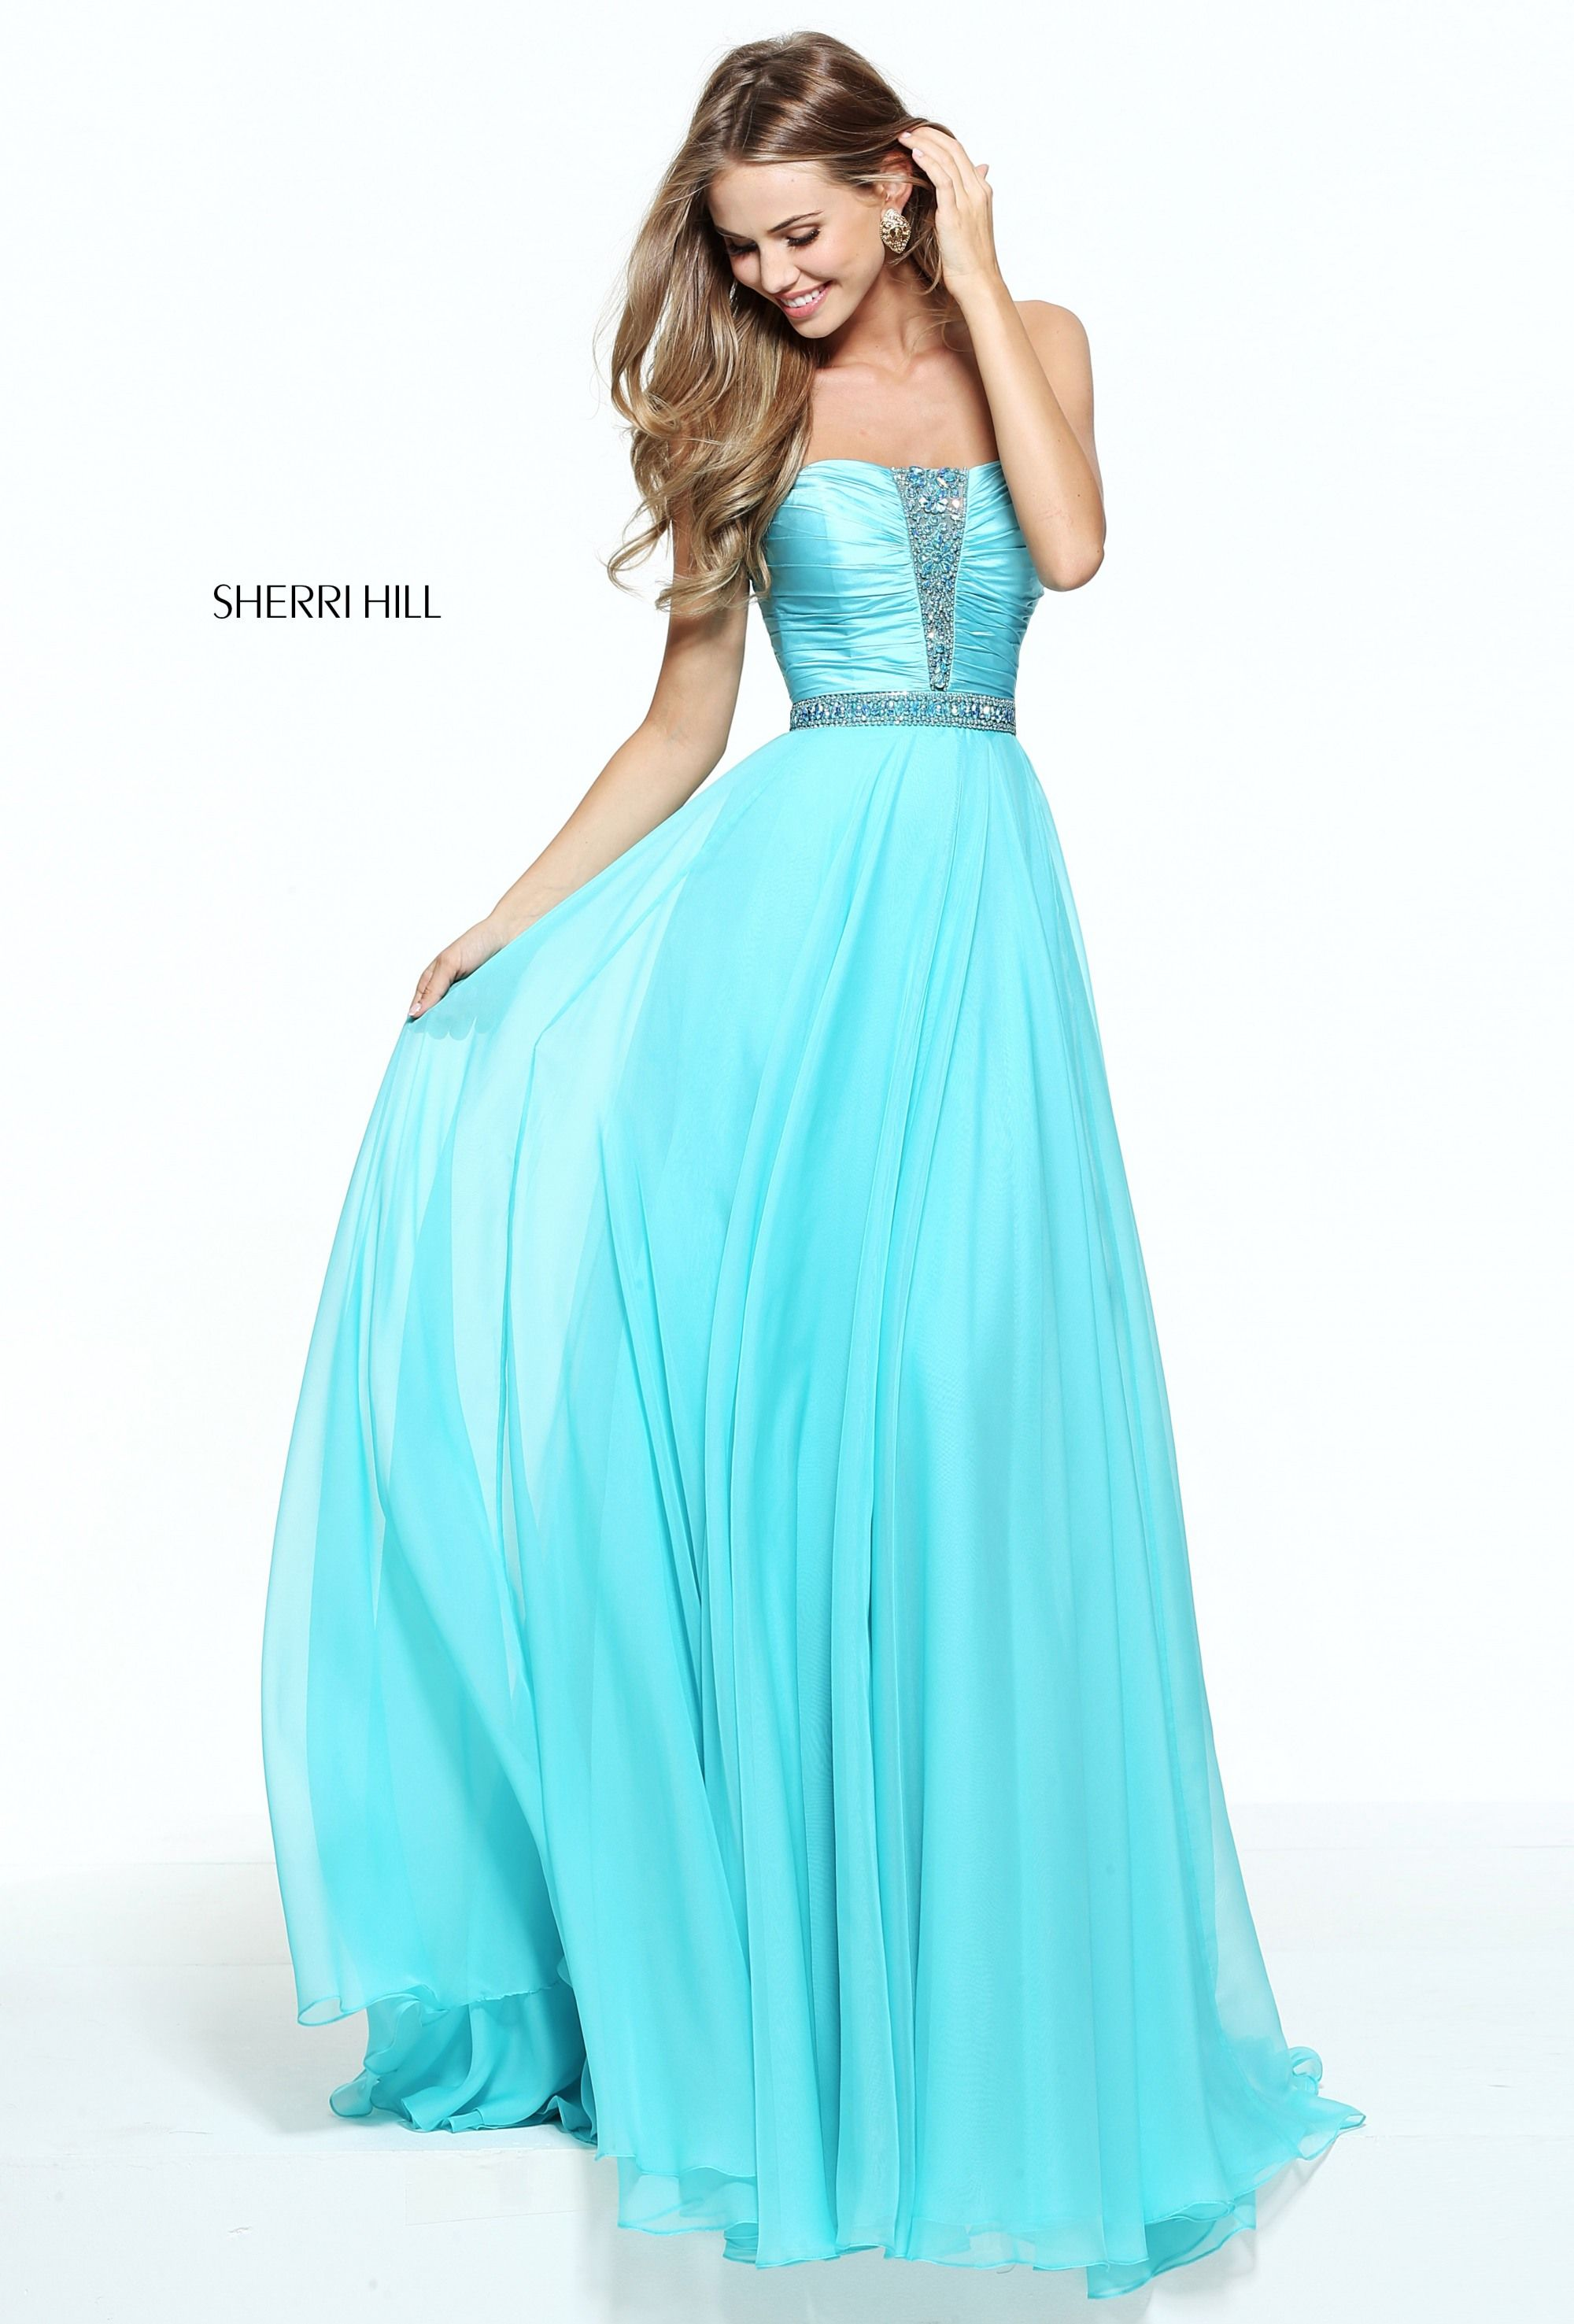 Tonal beadwork accents the ruched bodice of this sherri hill